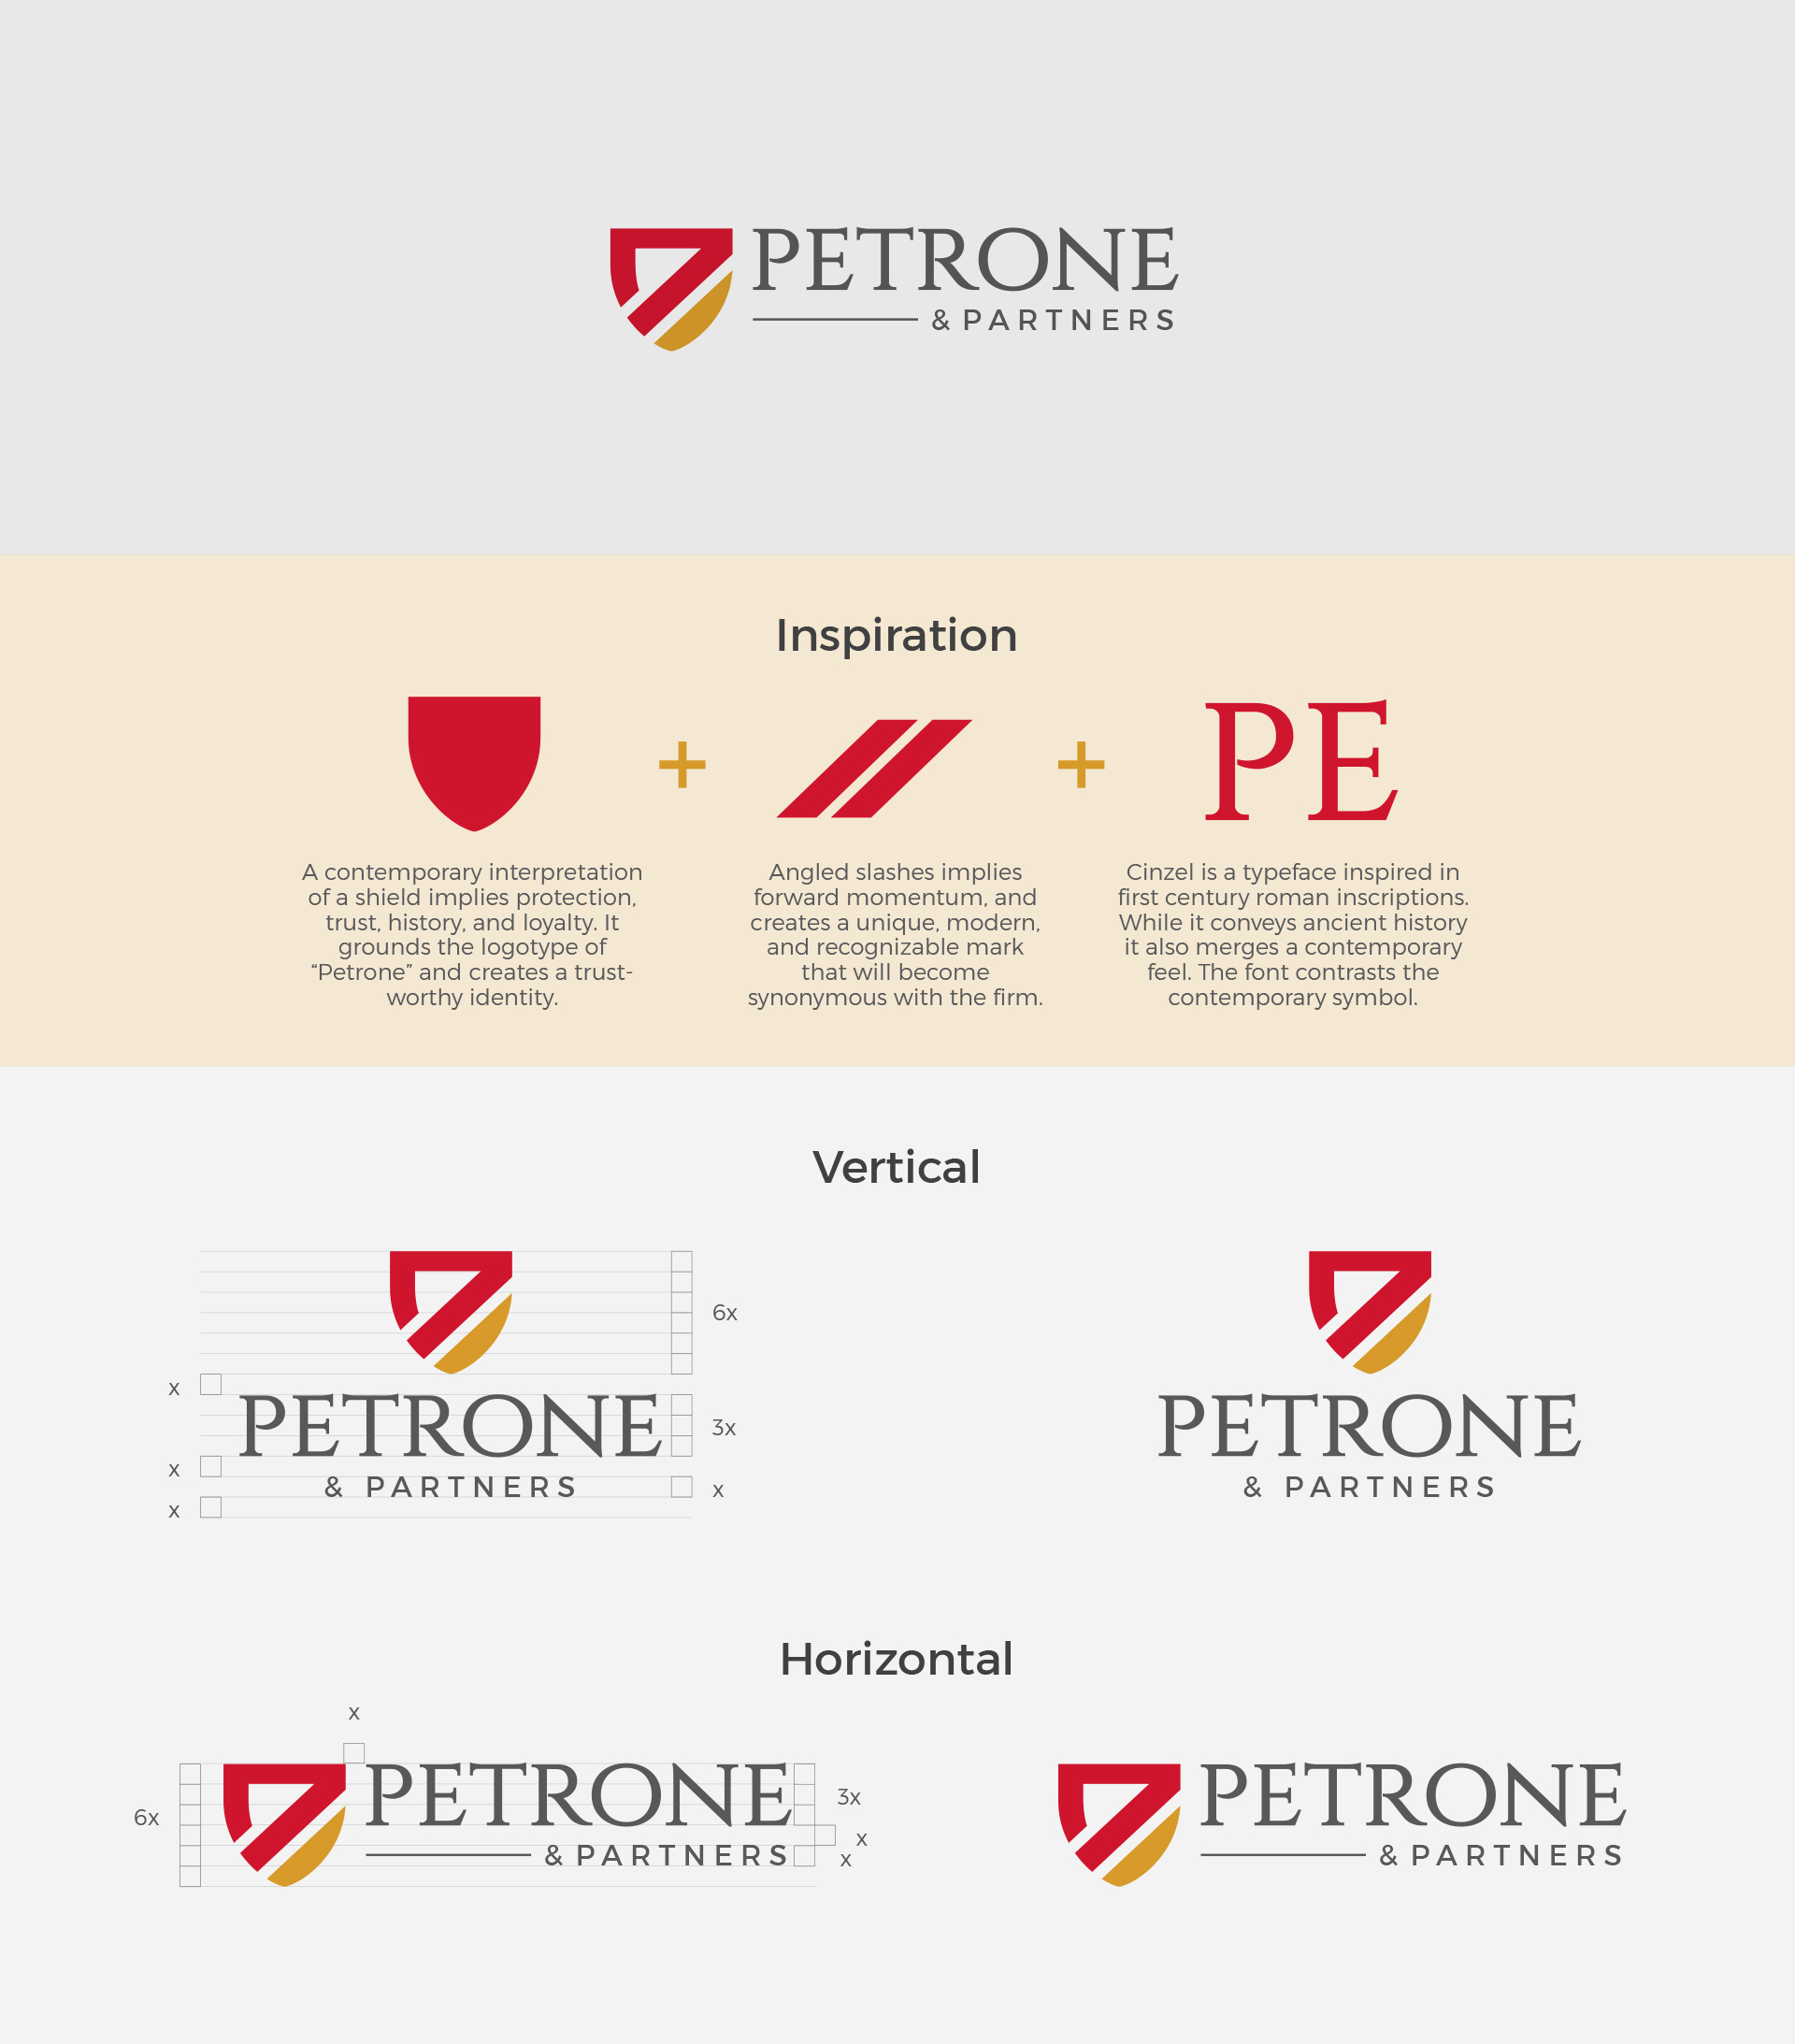 Petrone & Partners Logo Breakdown